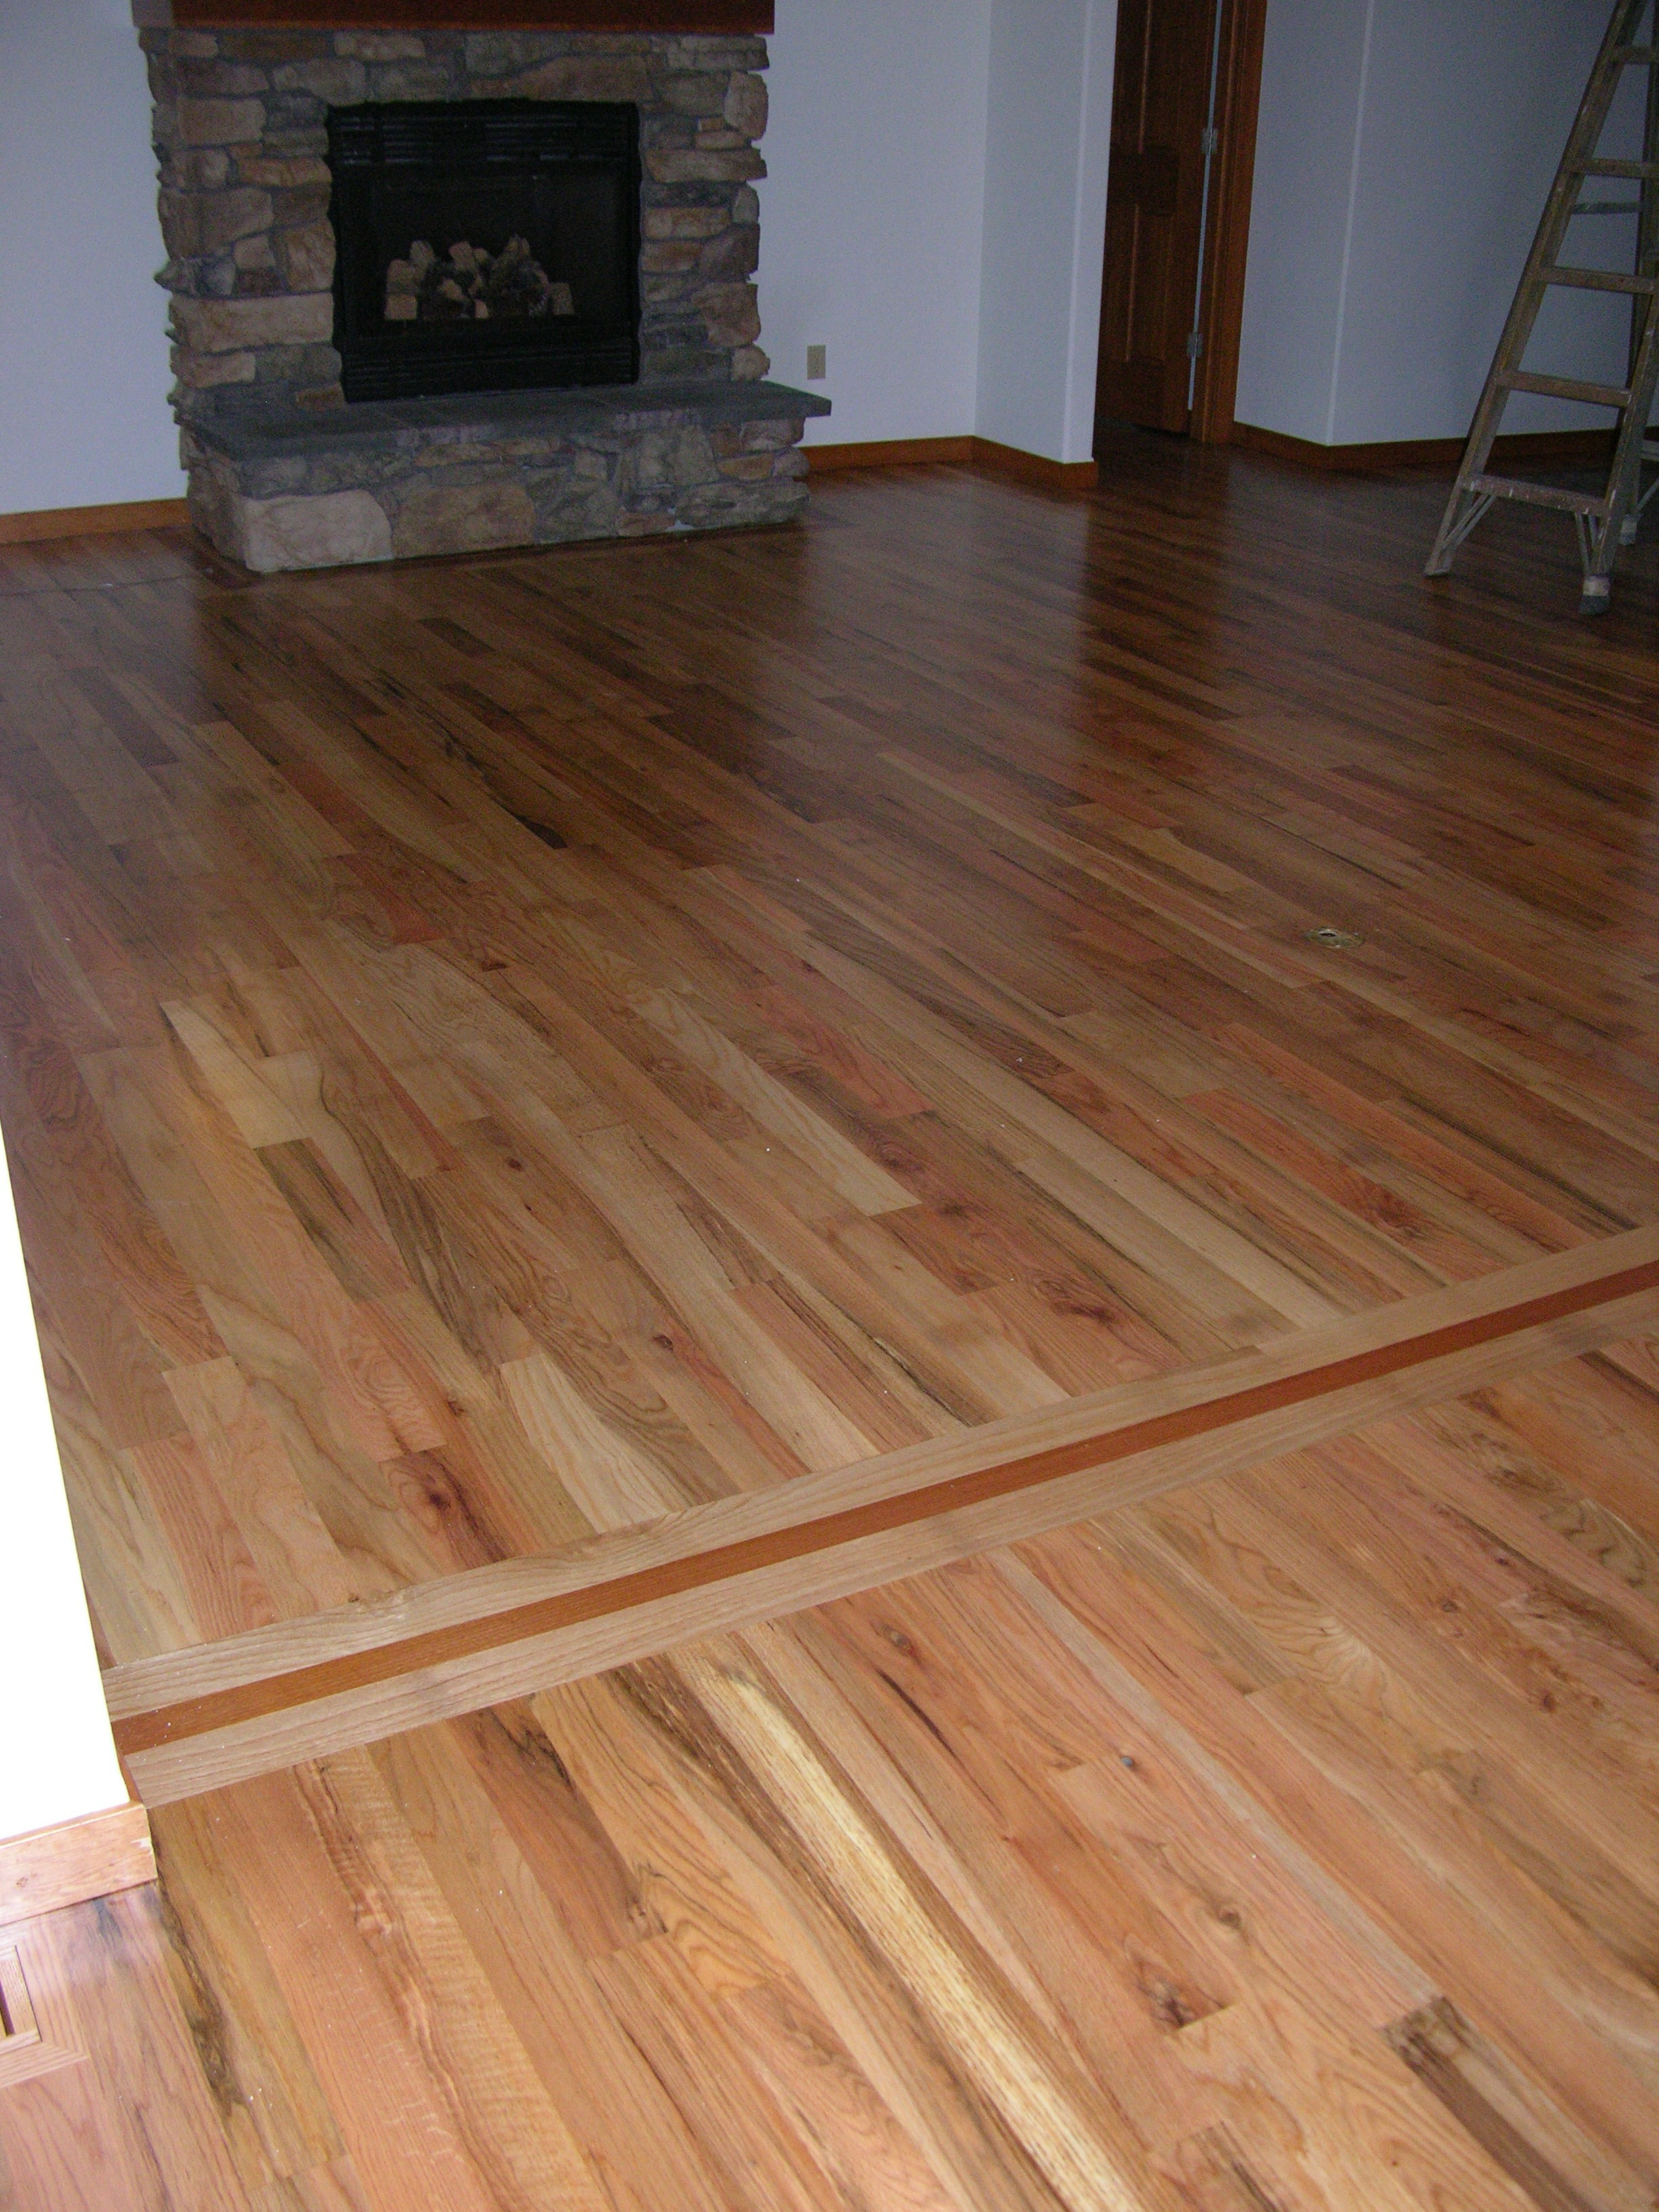 hardwood floor refinishing bellingham wa of hardwood floor installation kens custom floors pertaining to hardwood floor installation